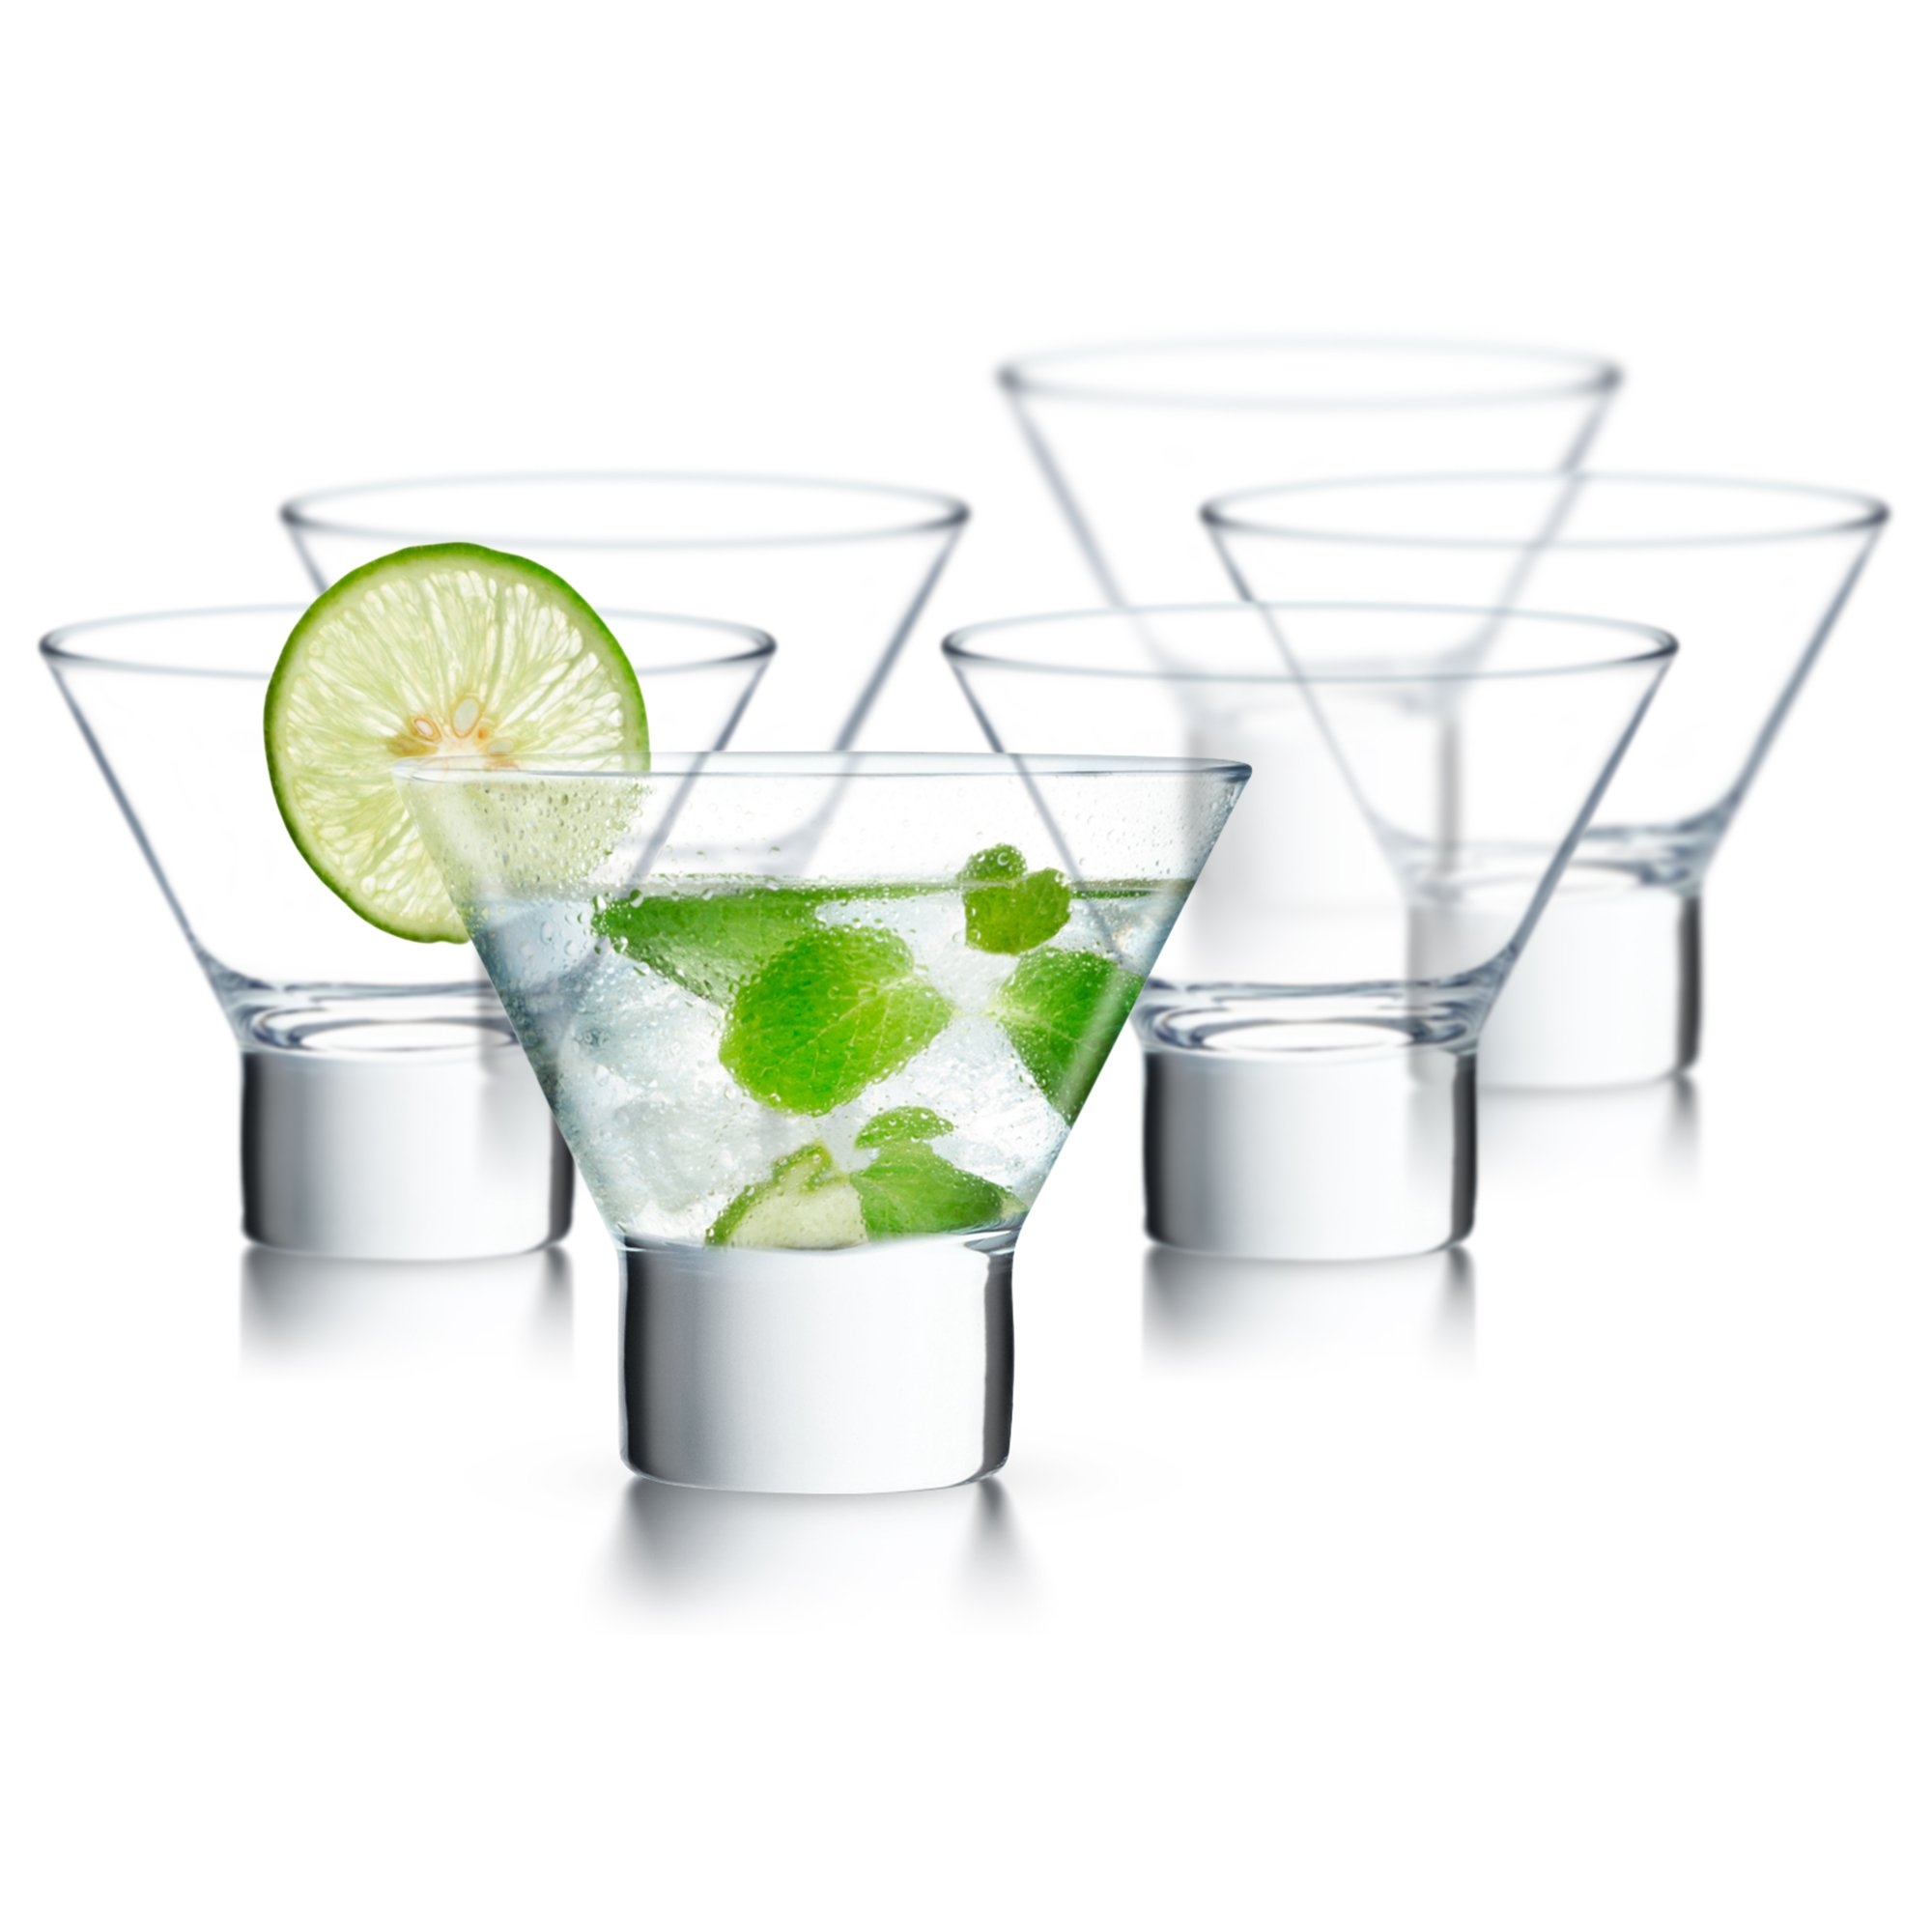 KooK Stemless Martini Cocktail Glass 8 Ounces, Set of 6